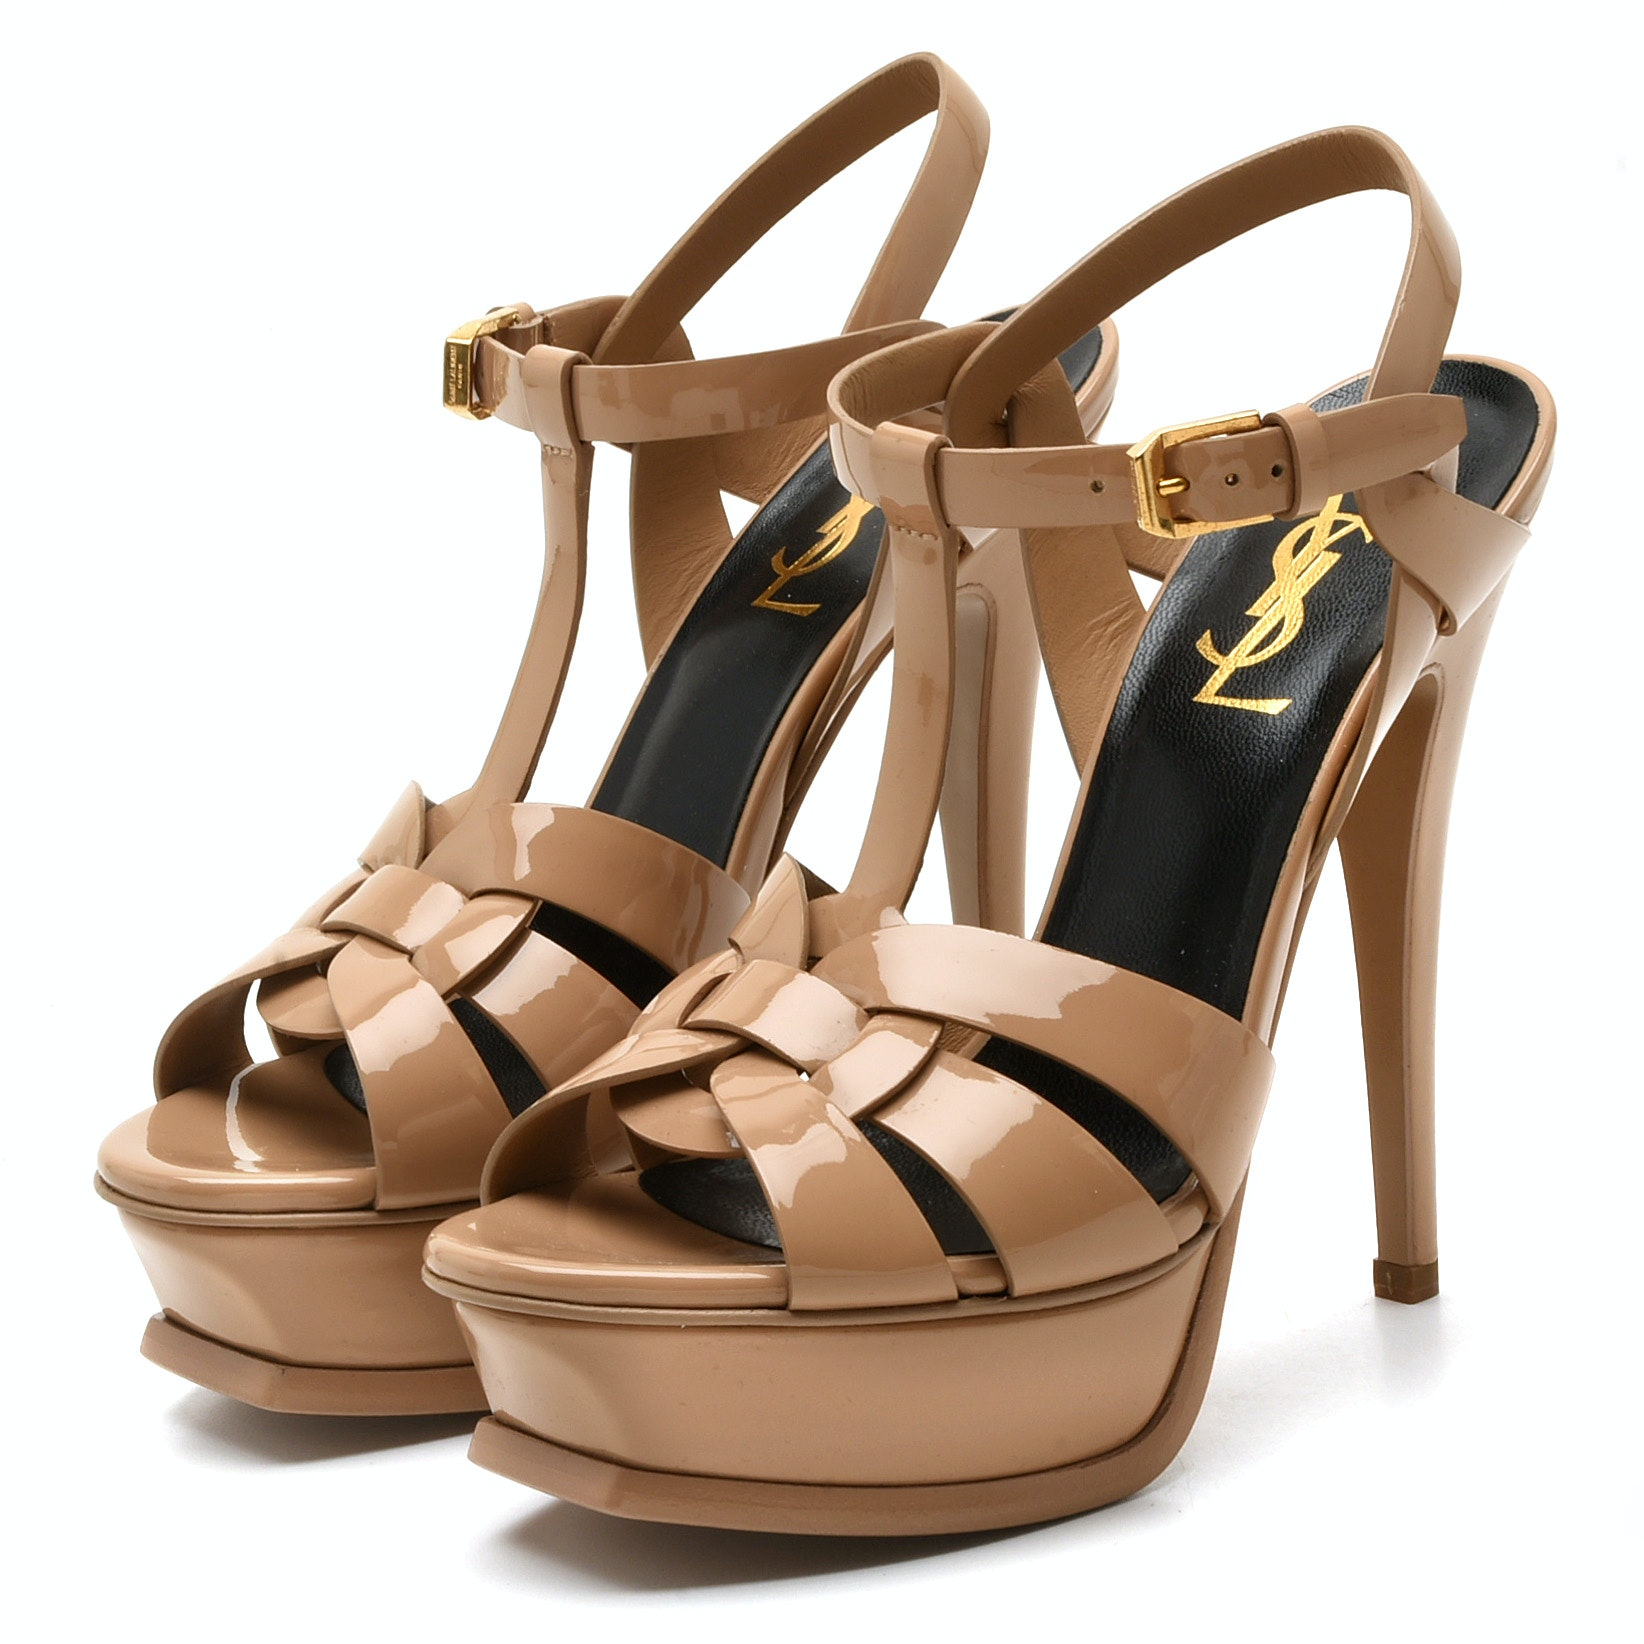 Yves Saint Laurent Tribute Nude Patent Leather Platform High-Heeled Sandals